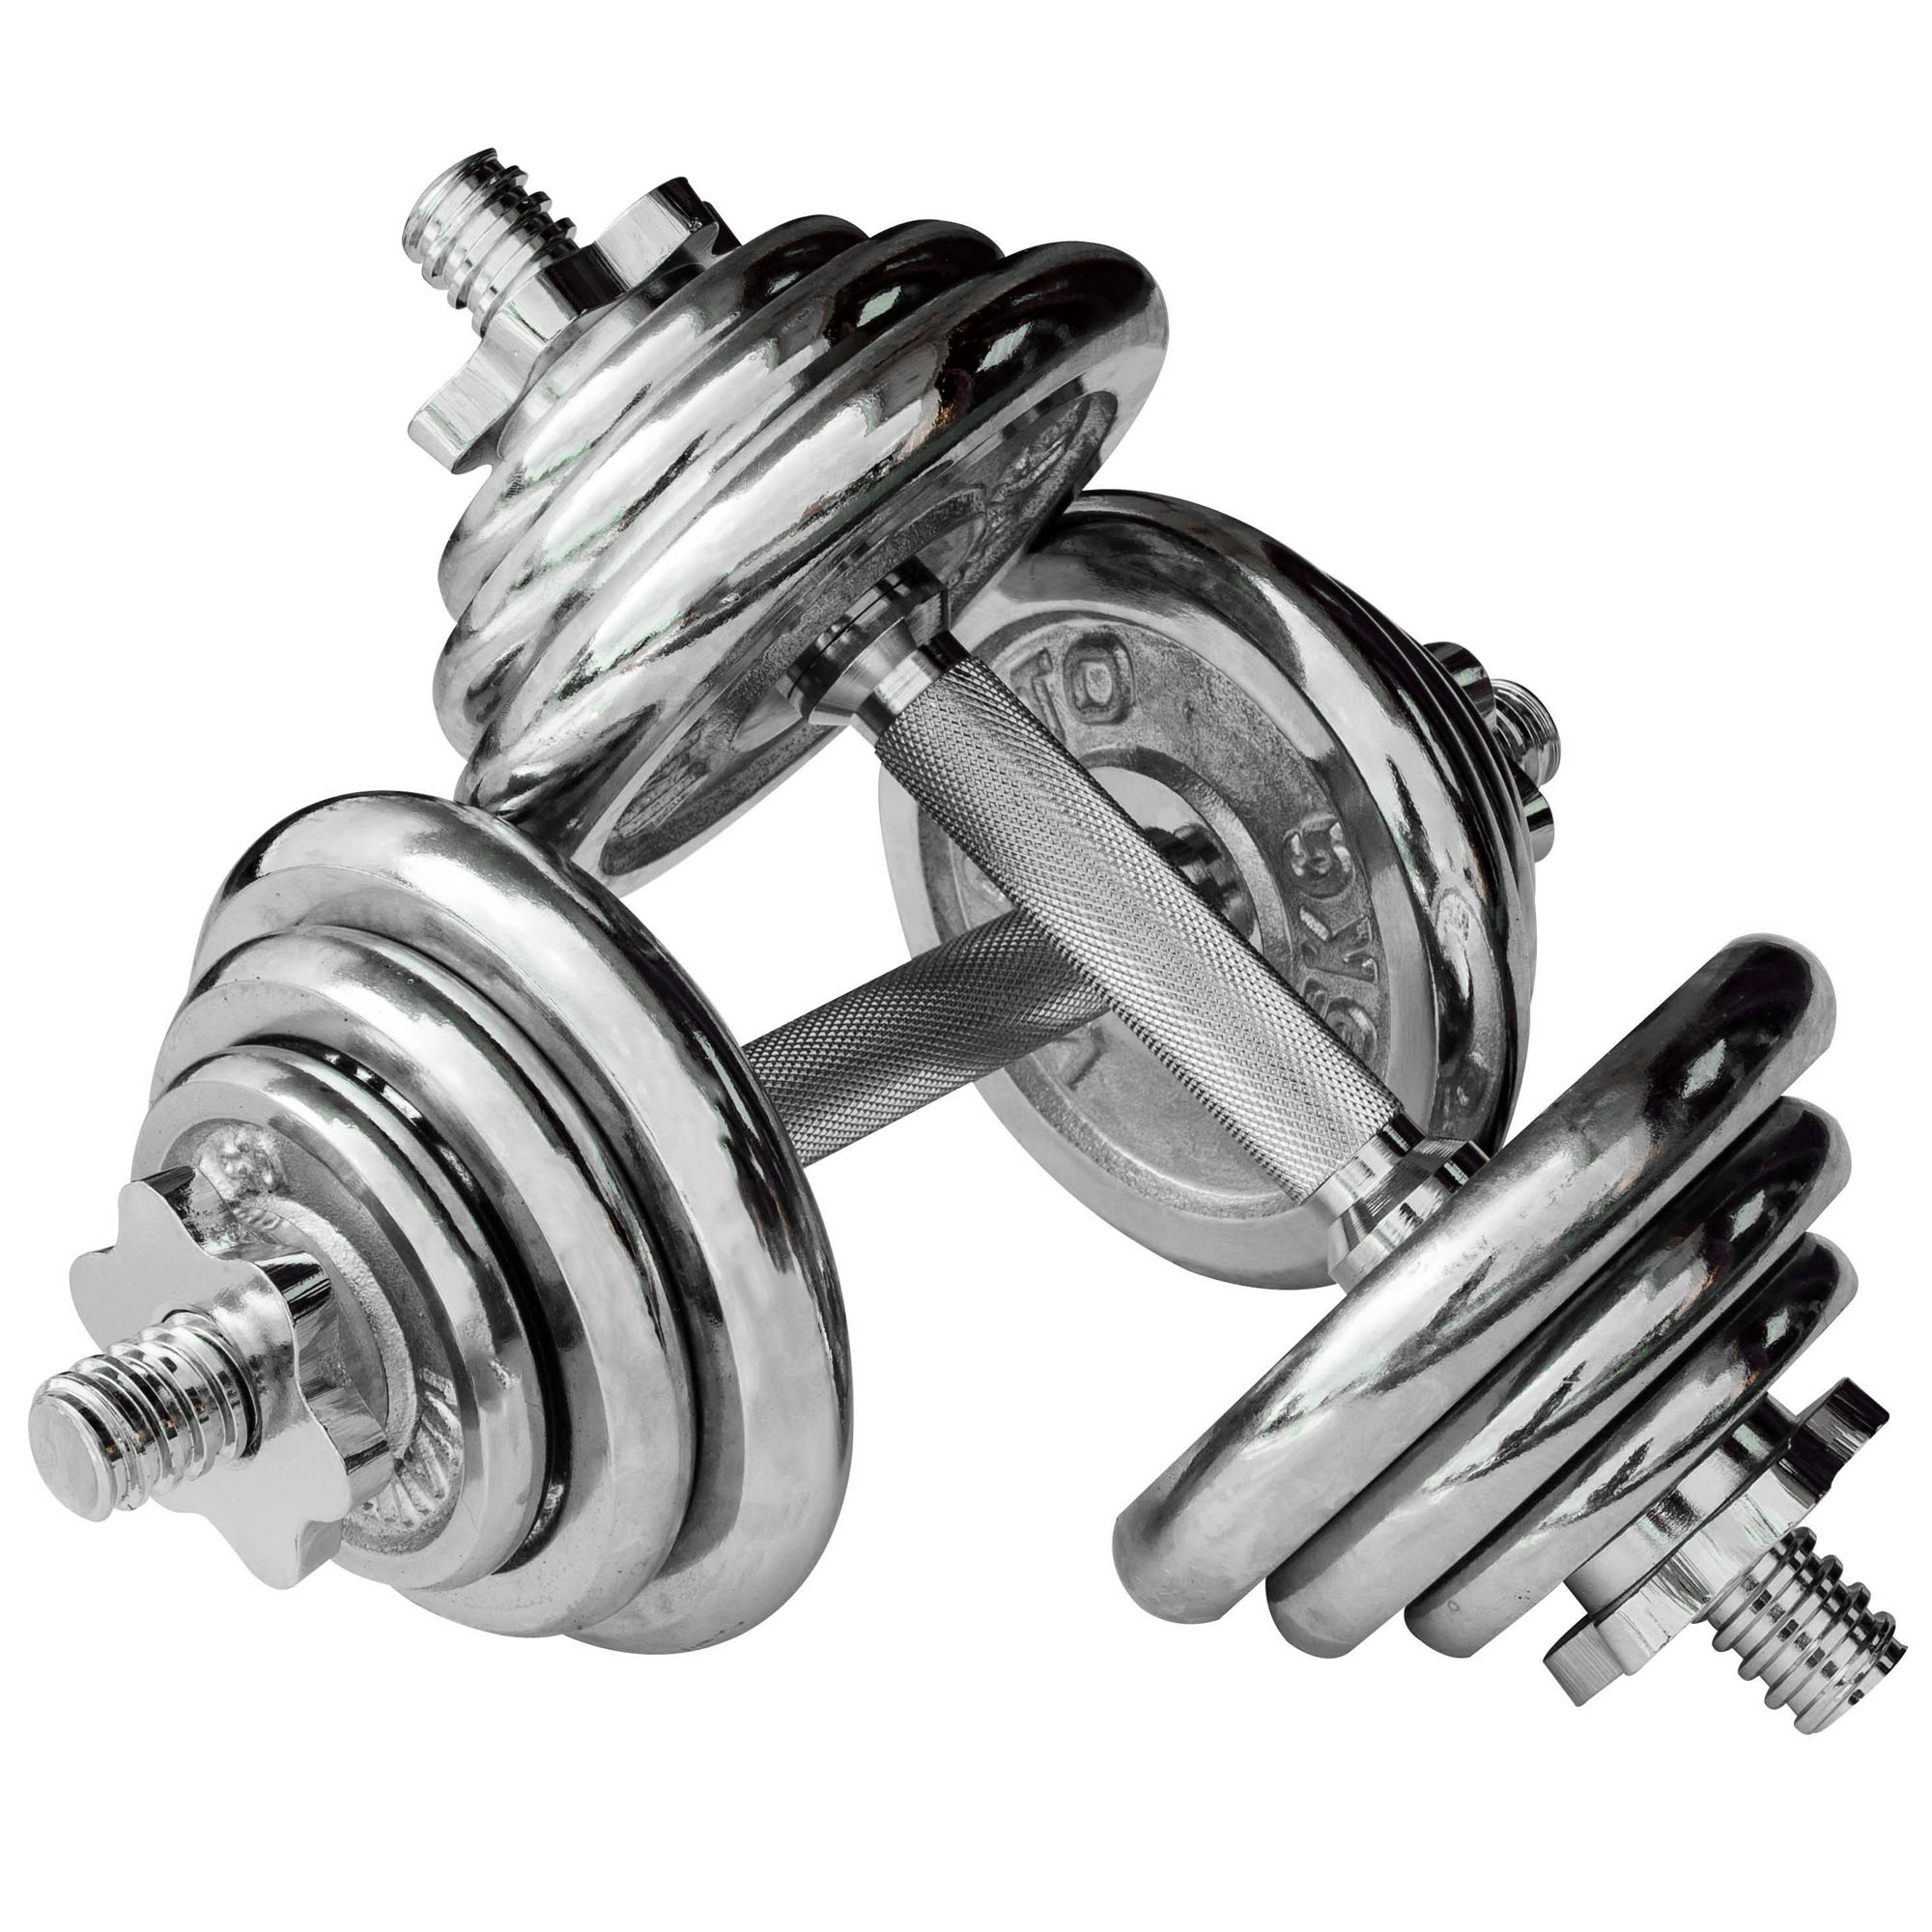 Buy Cheap Chrome Dumbbell Set